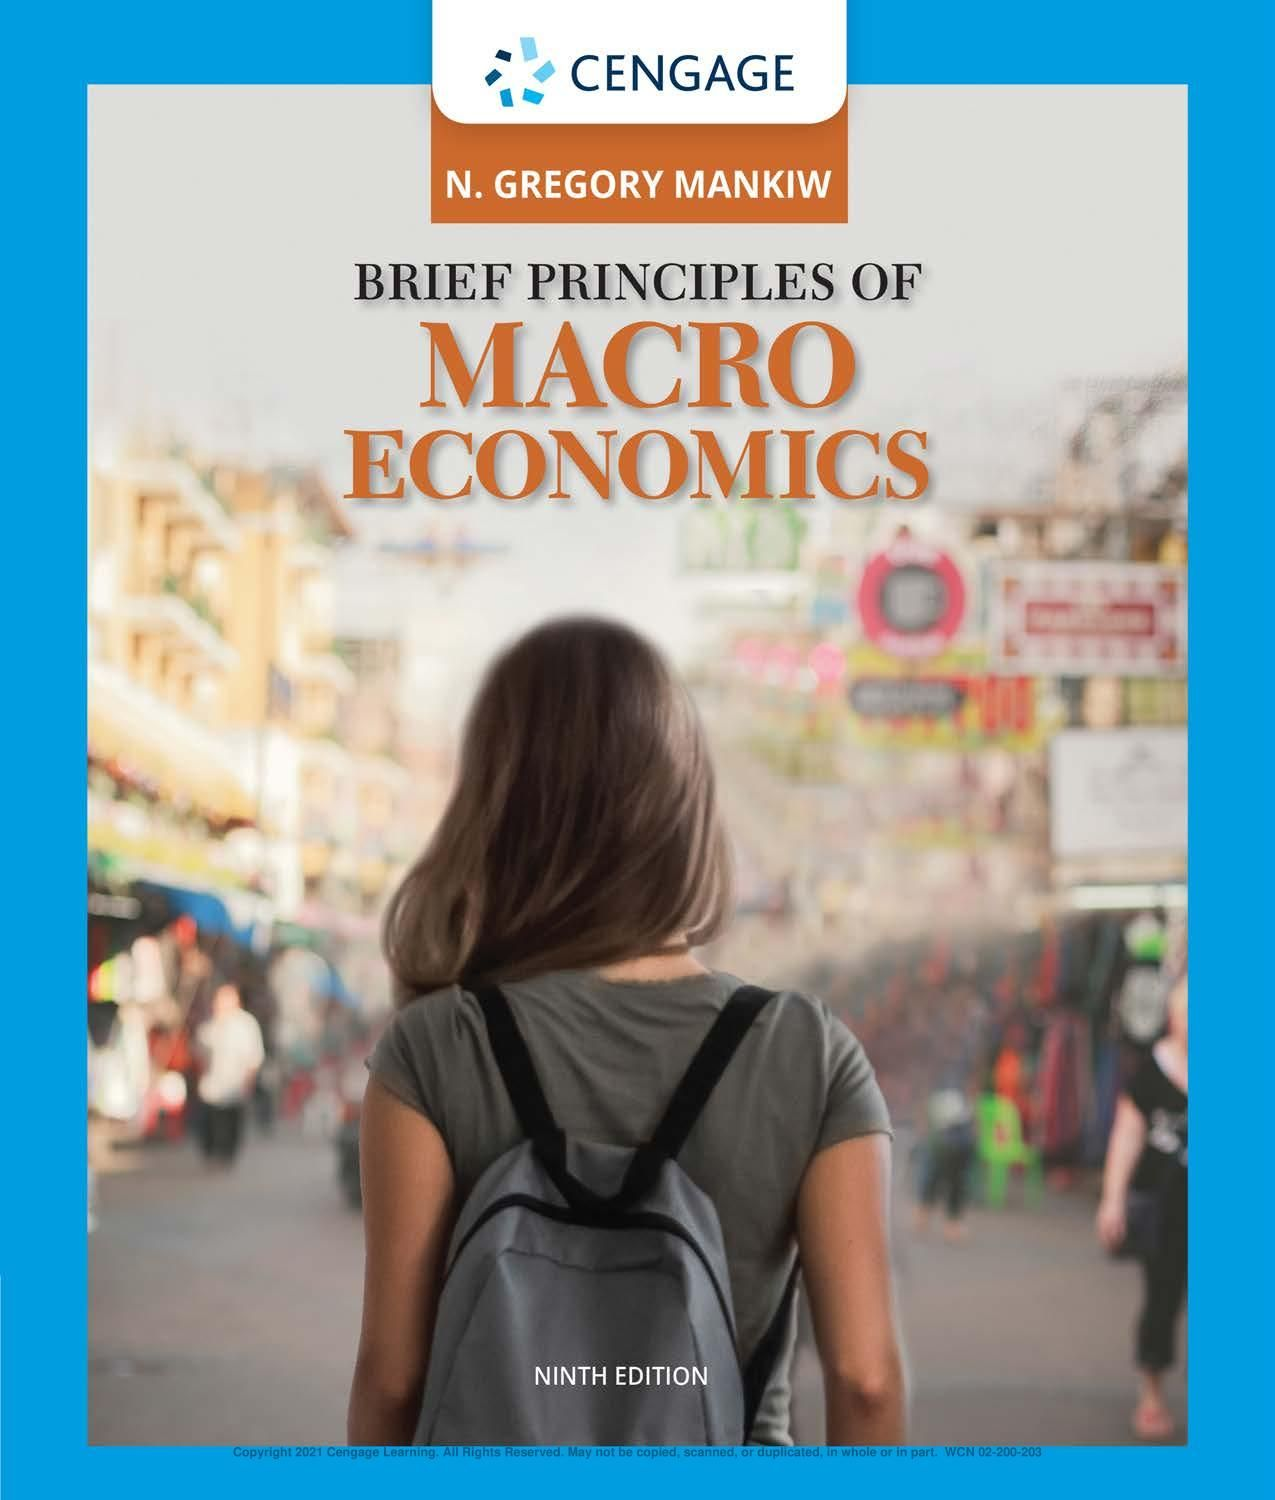 Download Brief Principles Of Macroeconomics 9th Edition Pdf Ebook Macroeconomics Digital Textbooks Ebook